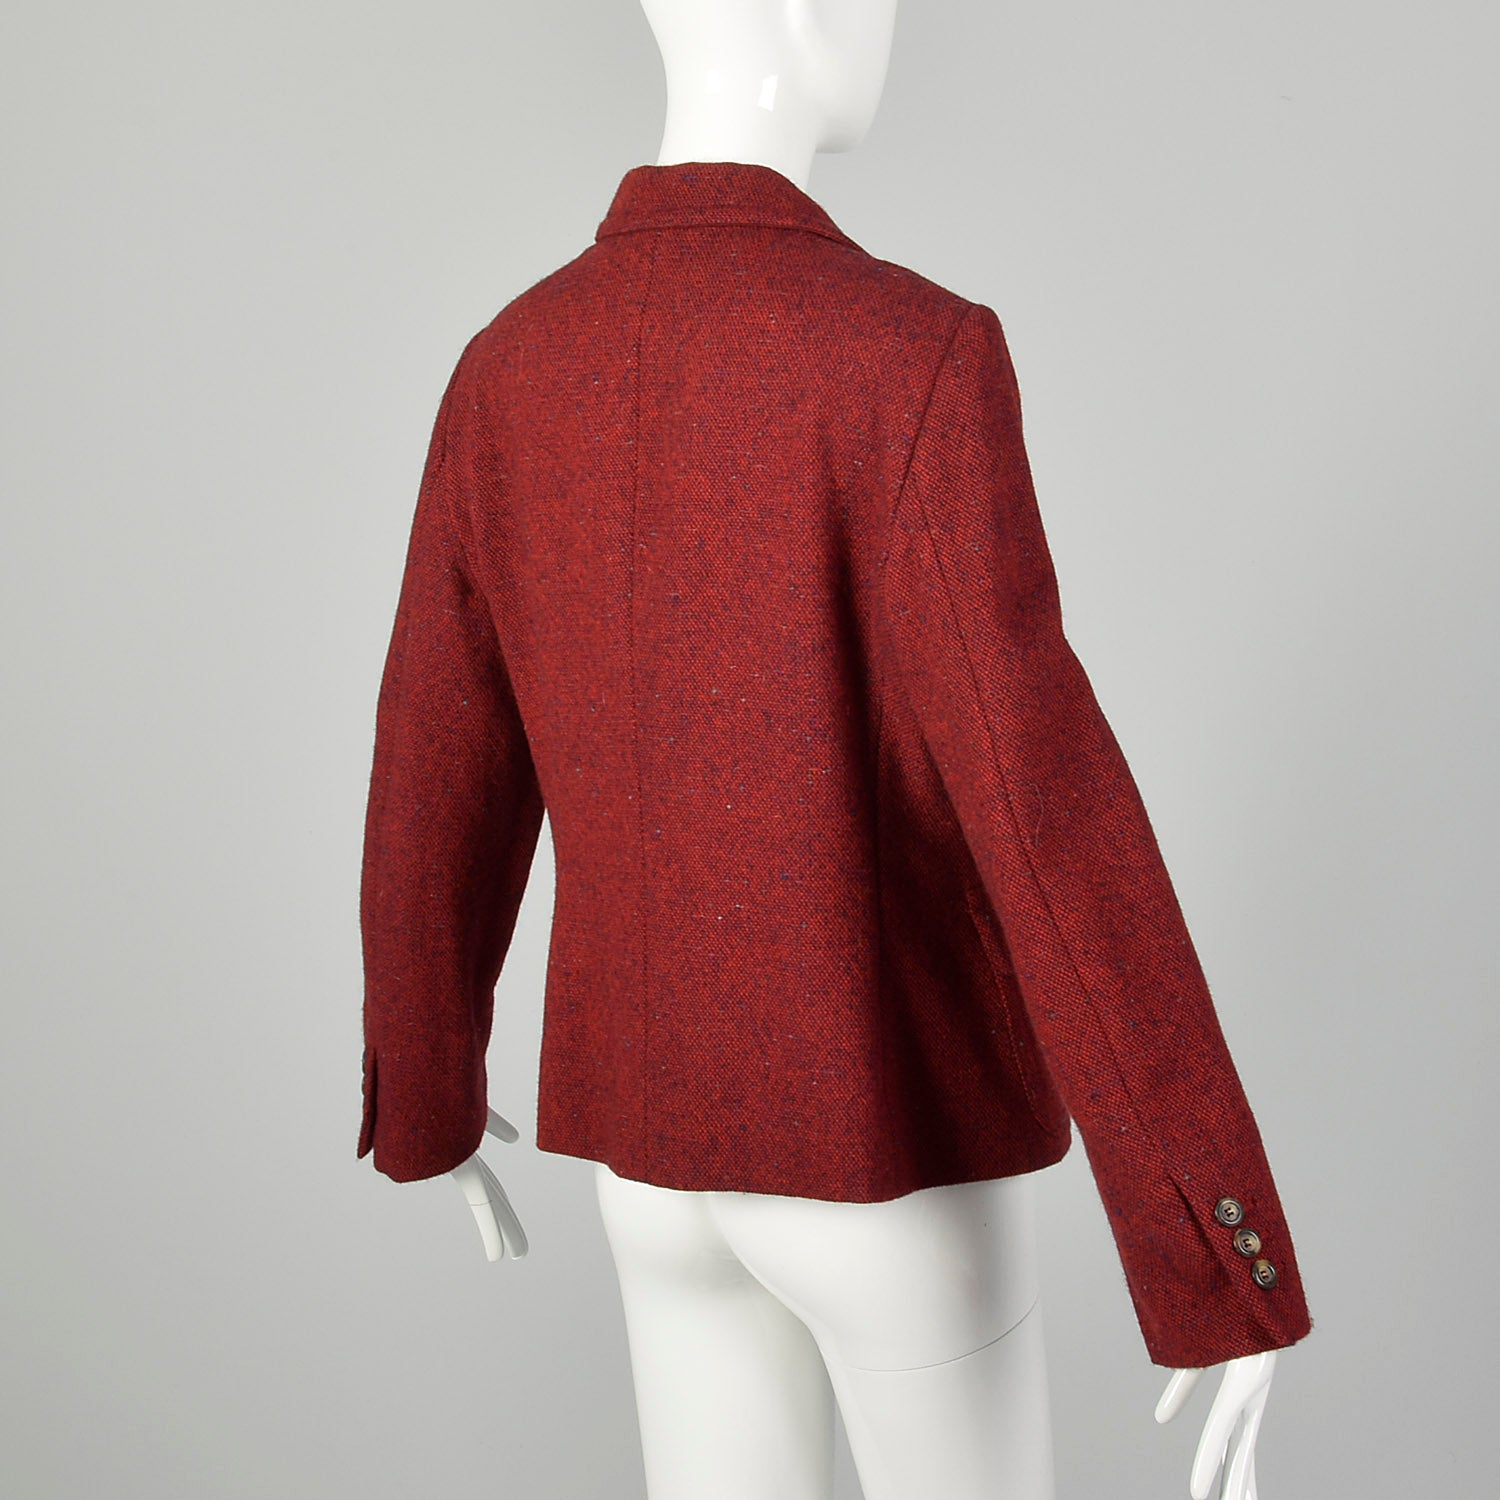 Medium 2010s Red Blazer Moschino Cheap & Chic Wool Tweed Yarn Flower Corsage Applique Jacket